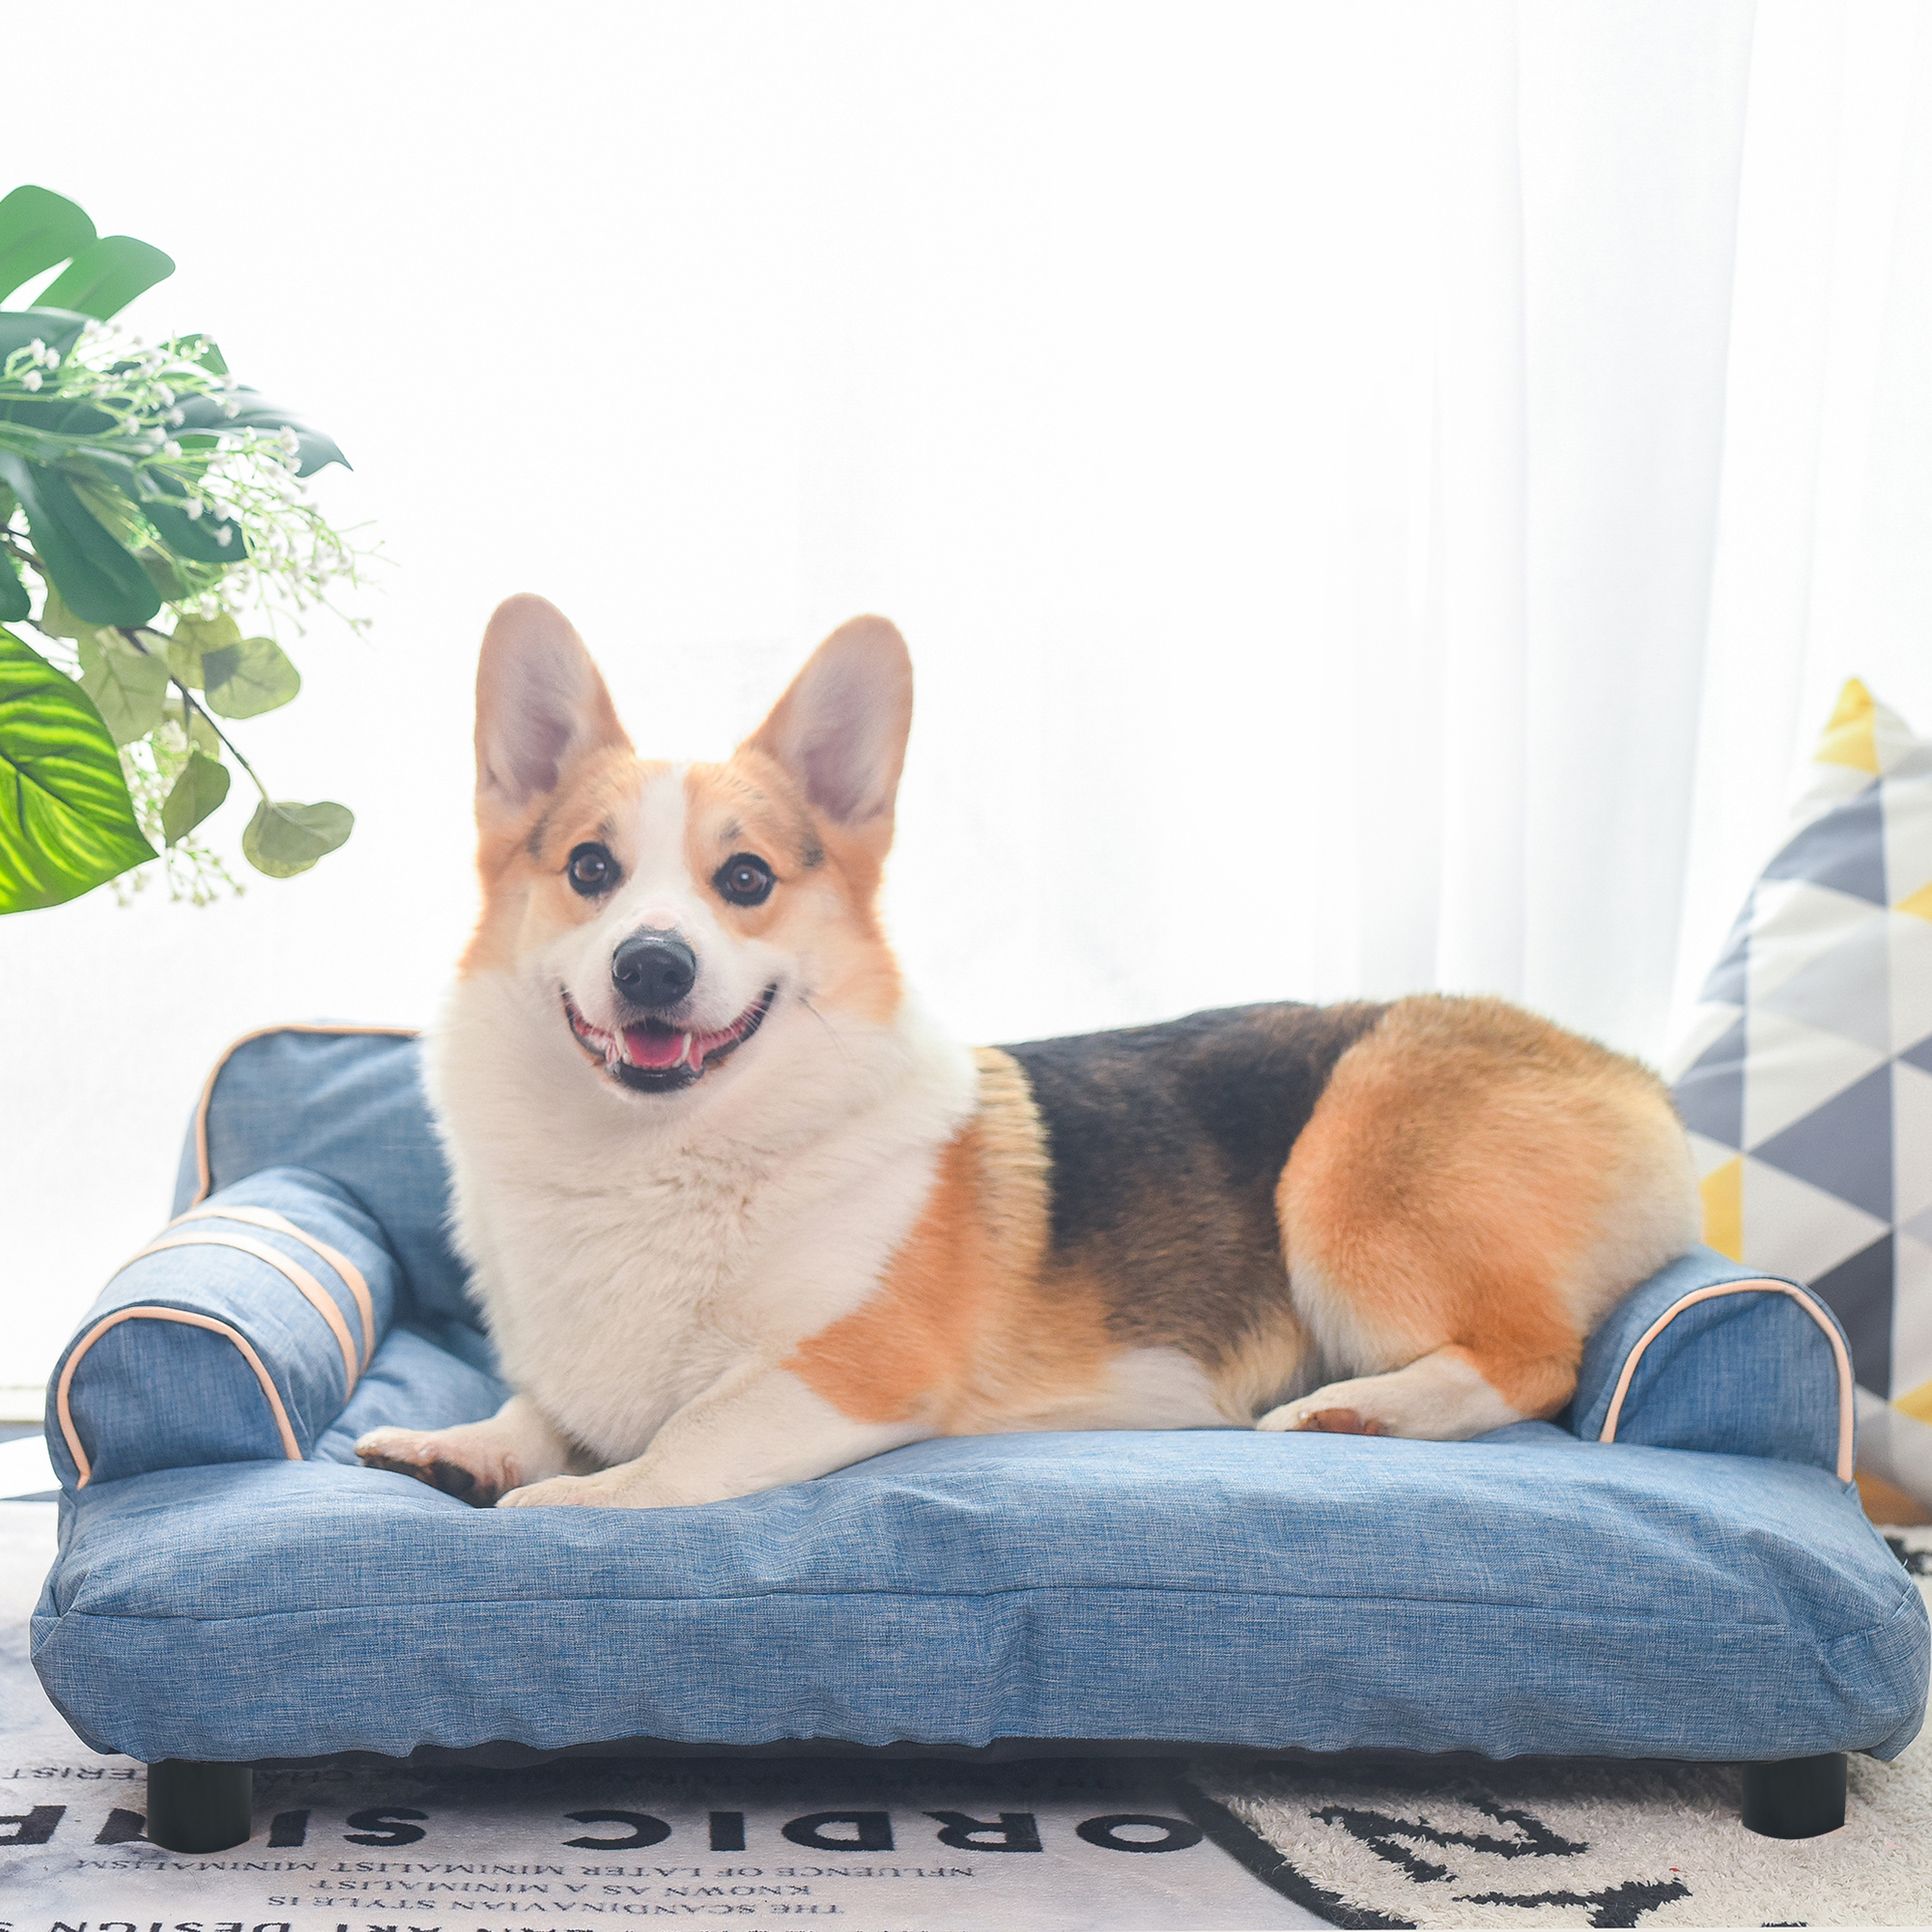 Pet Dog Bed Deluxe Oxford Fabric Large Lounge Dog Sofa W Adjustable Backrest And Armrest Sturdy Scratch Resistant Orthopedic Dog Bed For Elderly Dogs Or Puppies Blue 110lbs S983 Walmart Com Walmart Com